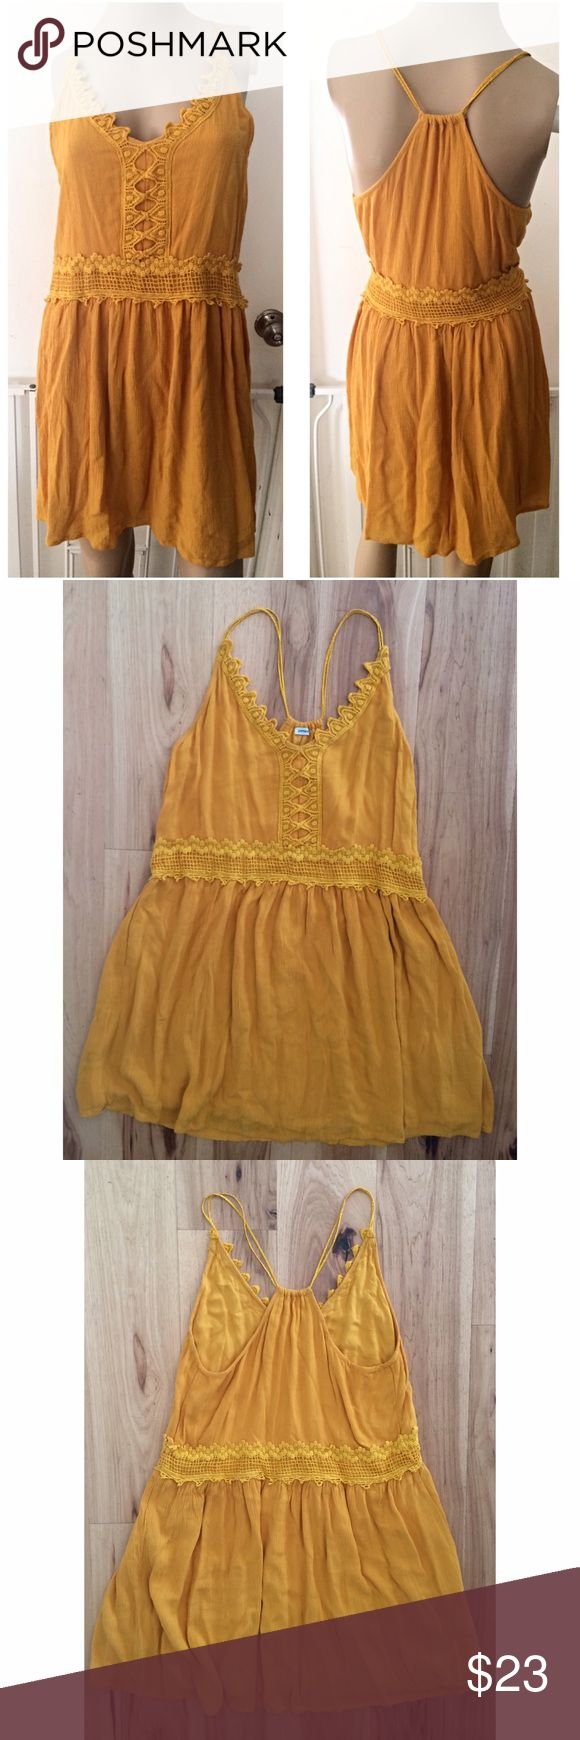 """Cute Pimkie Crochet Lace Racerback Dress In good pre-loved condition mustard yellow color crochet dress from UK brand Pimkie in size medium.  100% viscose material. Crochet detail in the breast and back of the dress. Drop waist with Racerback style. Lined underneath. Measure about 33"""" length, 15"""" pit to pit, 16"""" waist (estimate since this is more of a drop waist dress).❌Last pic of model is similar style from Pimkie. Actual dress are the last three pics.❌No trades or modeling. Open to…"""